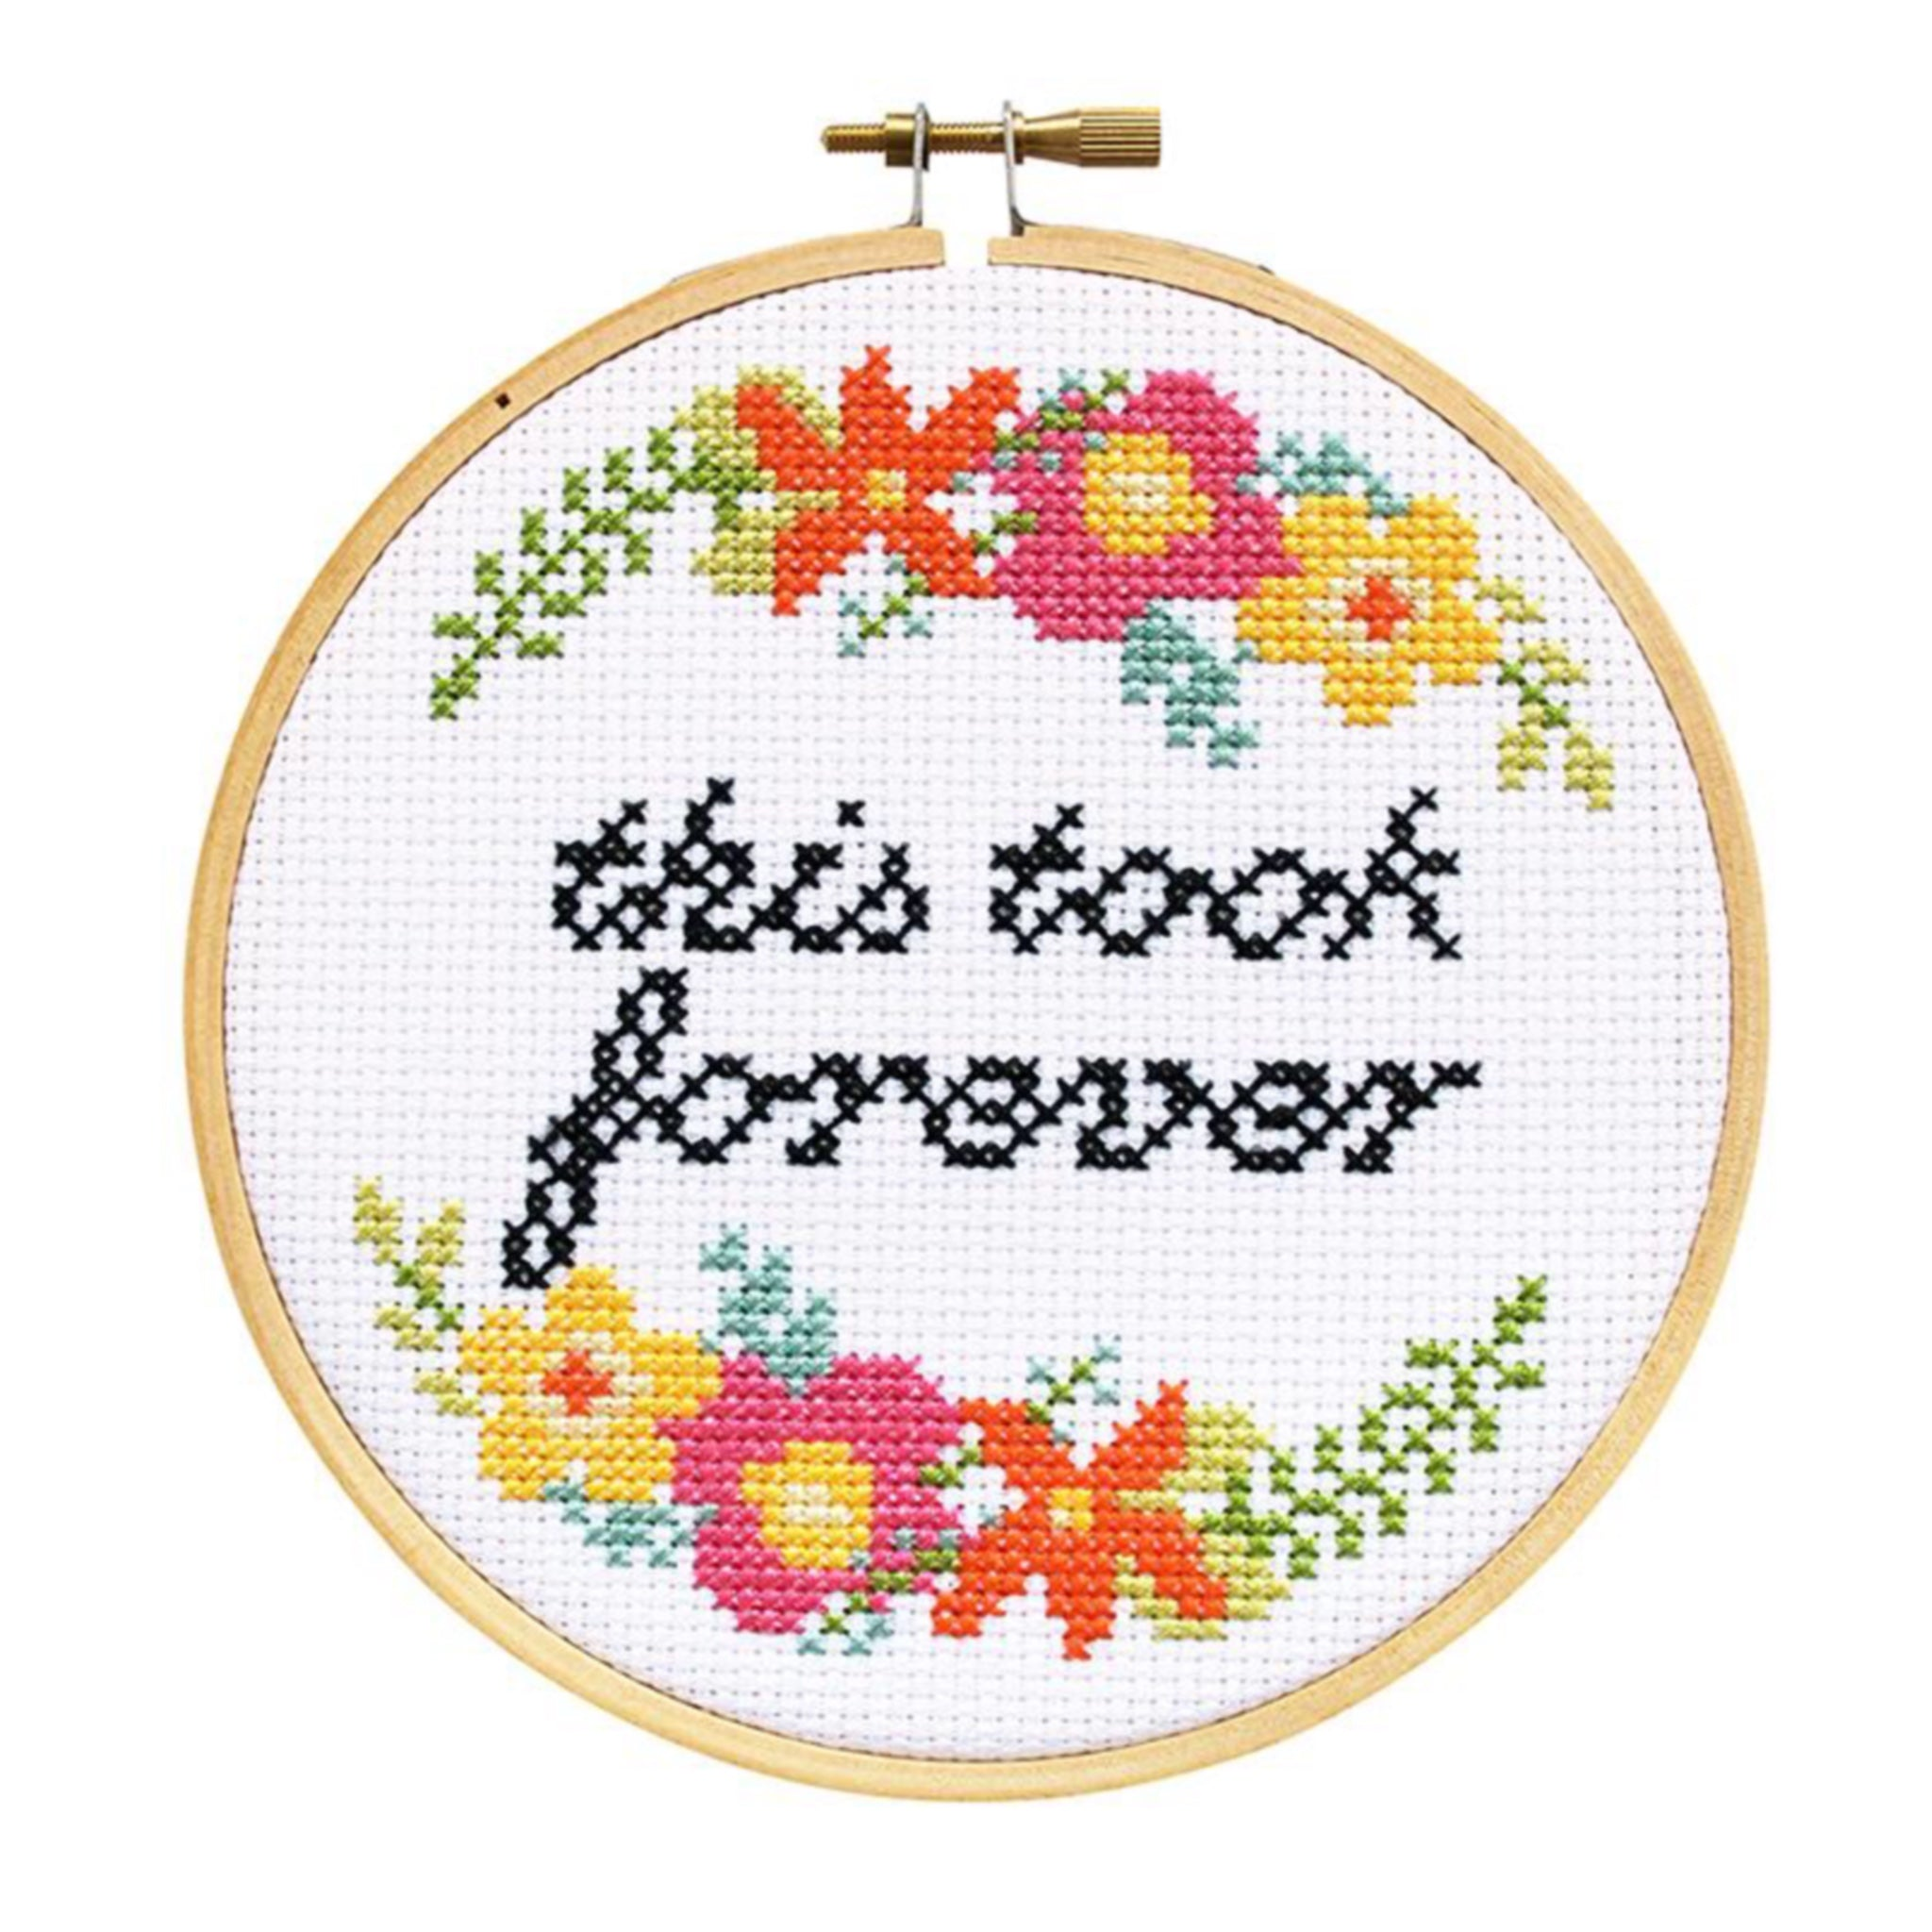 This Took Forever DIY Cross Stitch Kit - by The Stranded Stitch - K. A. Artist Shop